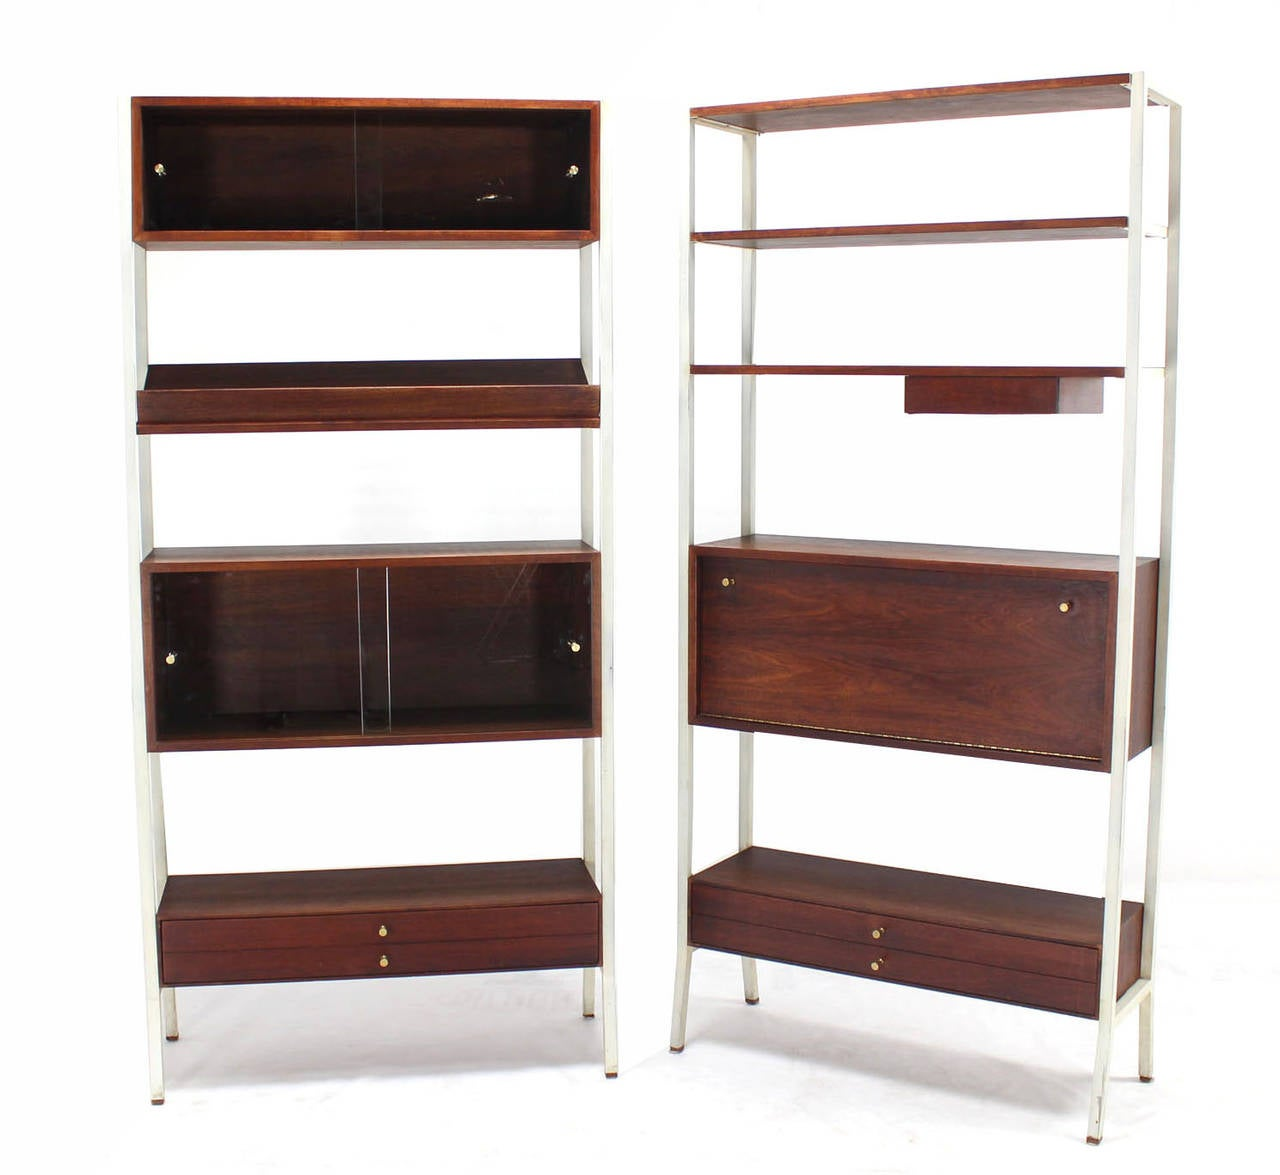 two part walnut wall unit shelving bookcases at 1stdibs walnut wall shelves uk walnut wall shelves floating